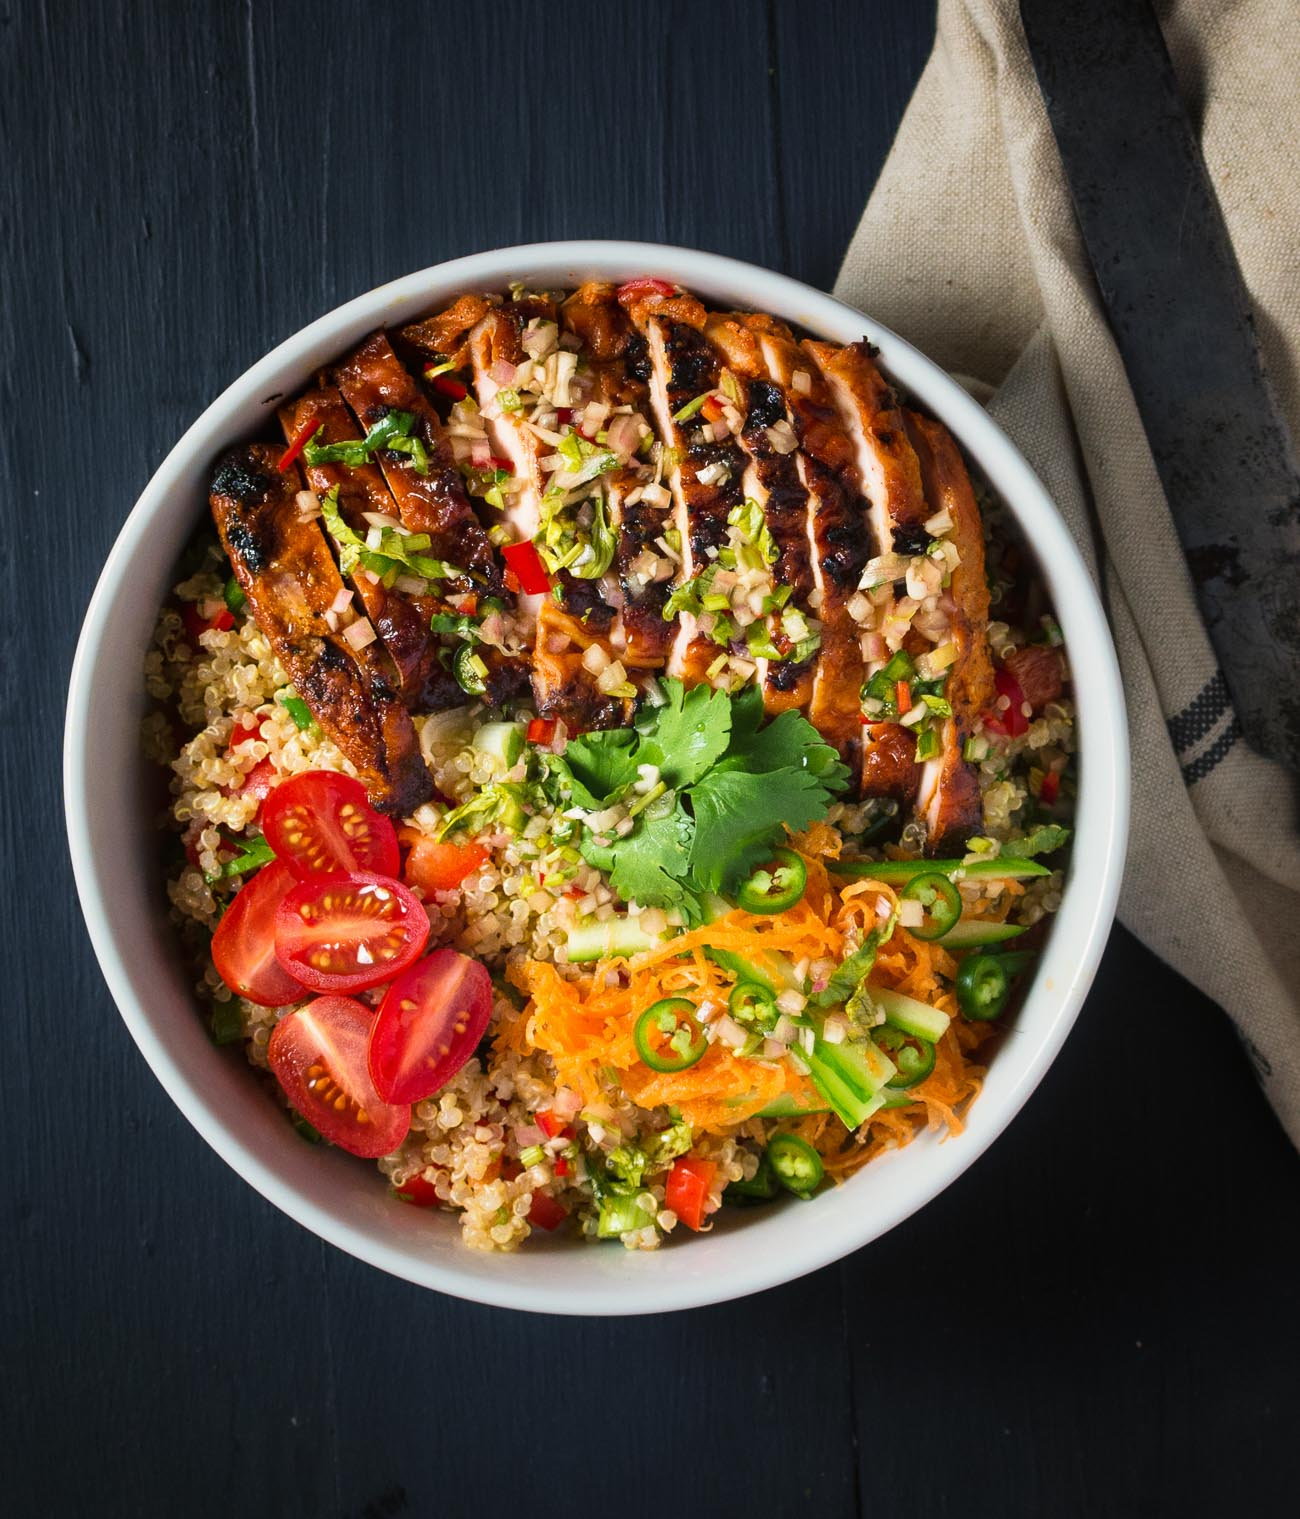 This Thai chicken buddha bowl brings sweet, sour, salty and spicy flavours together in a delicious weeknight meal.